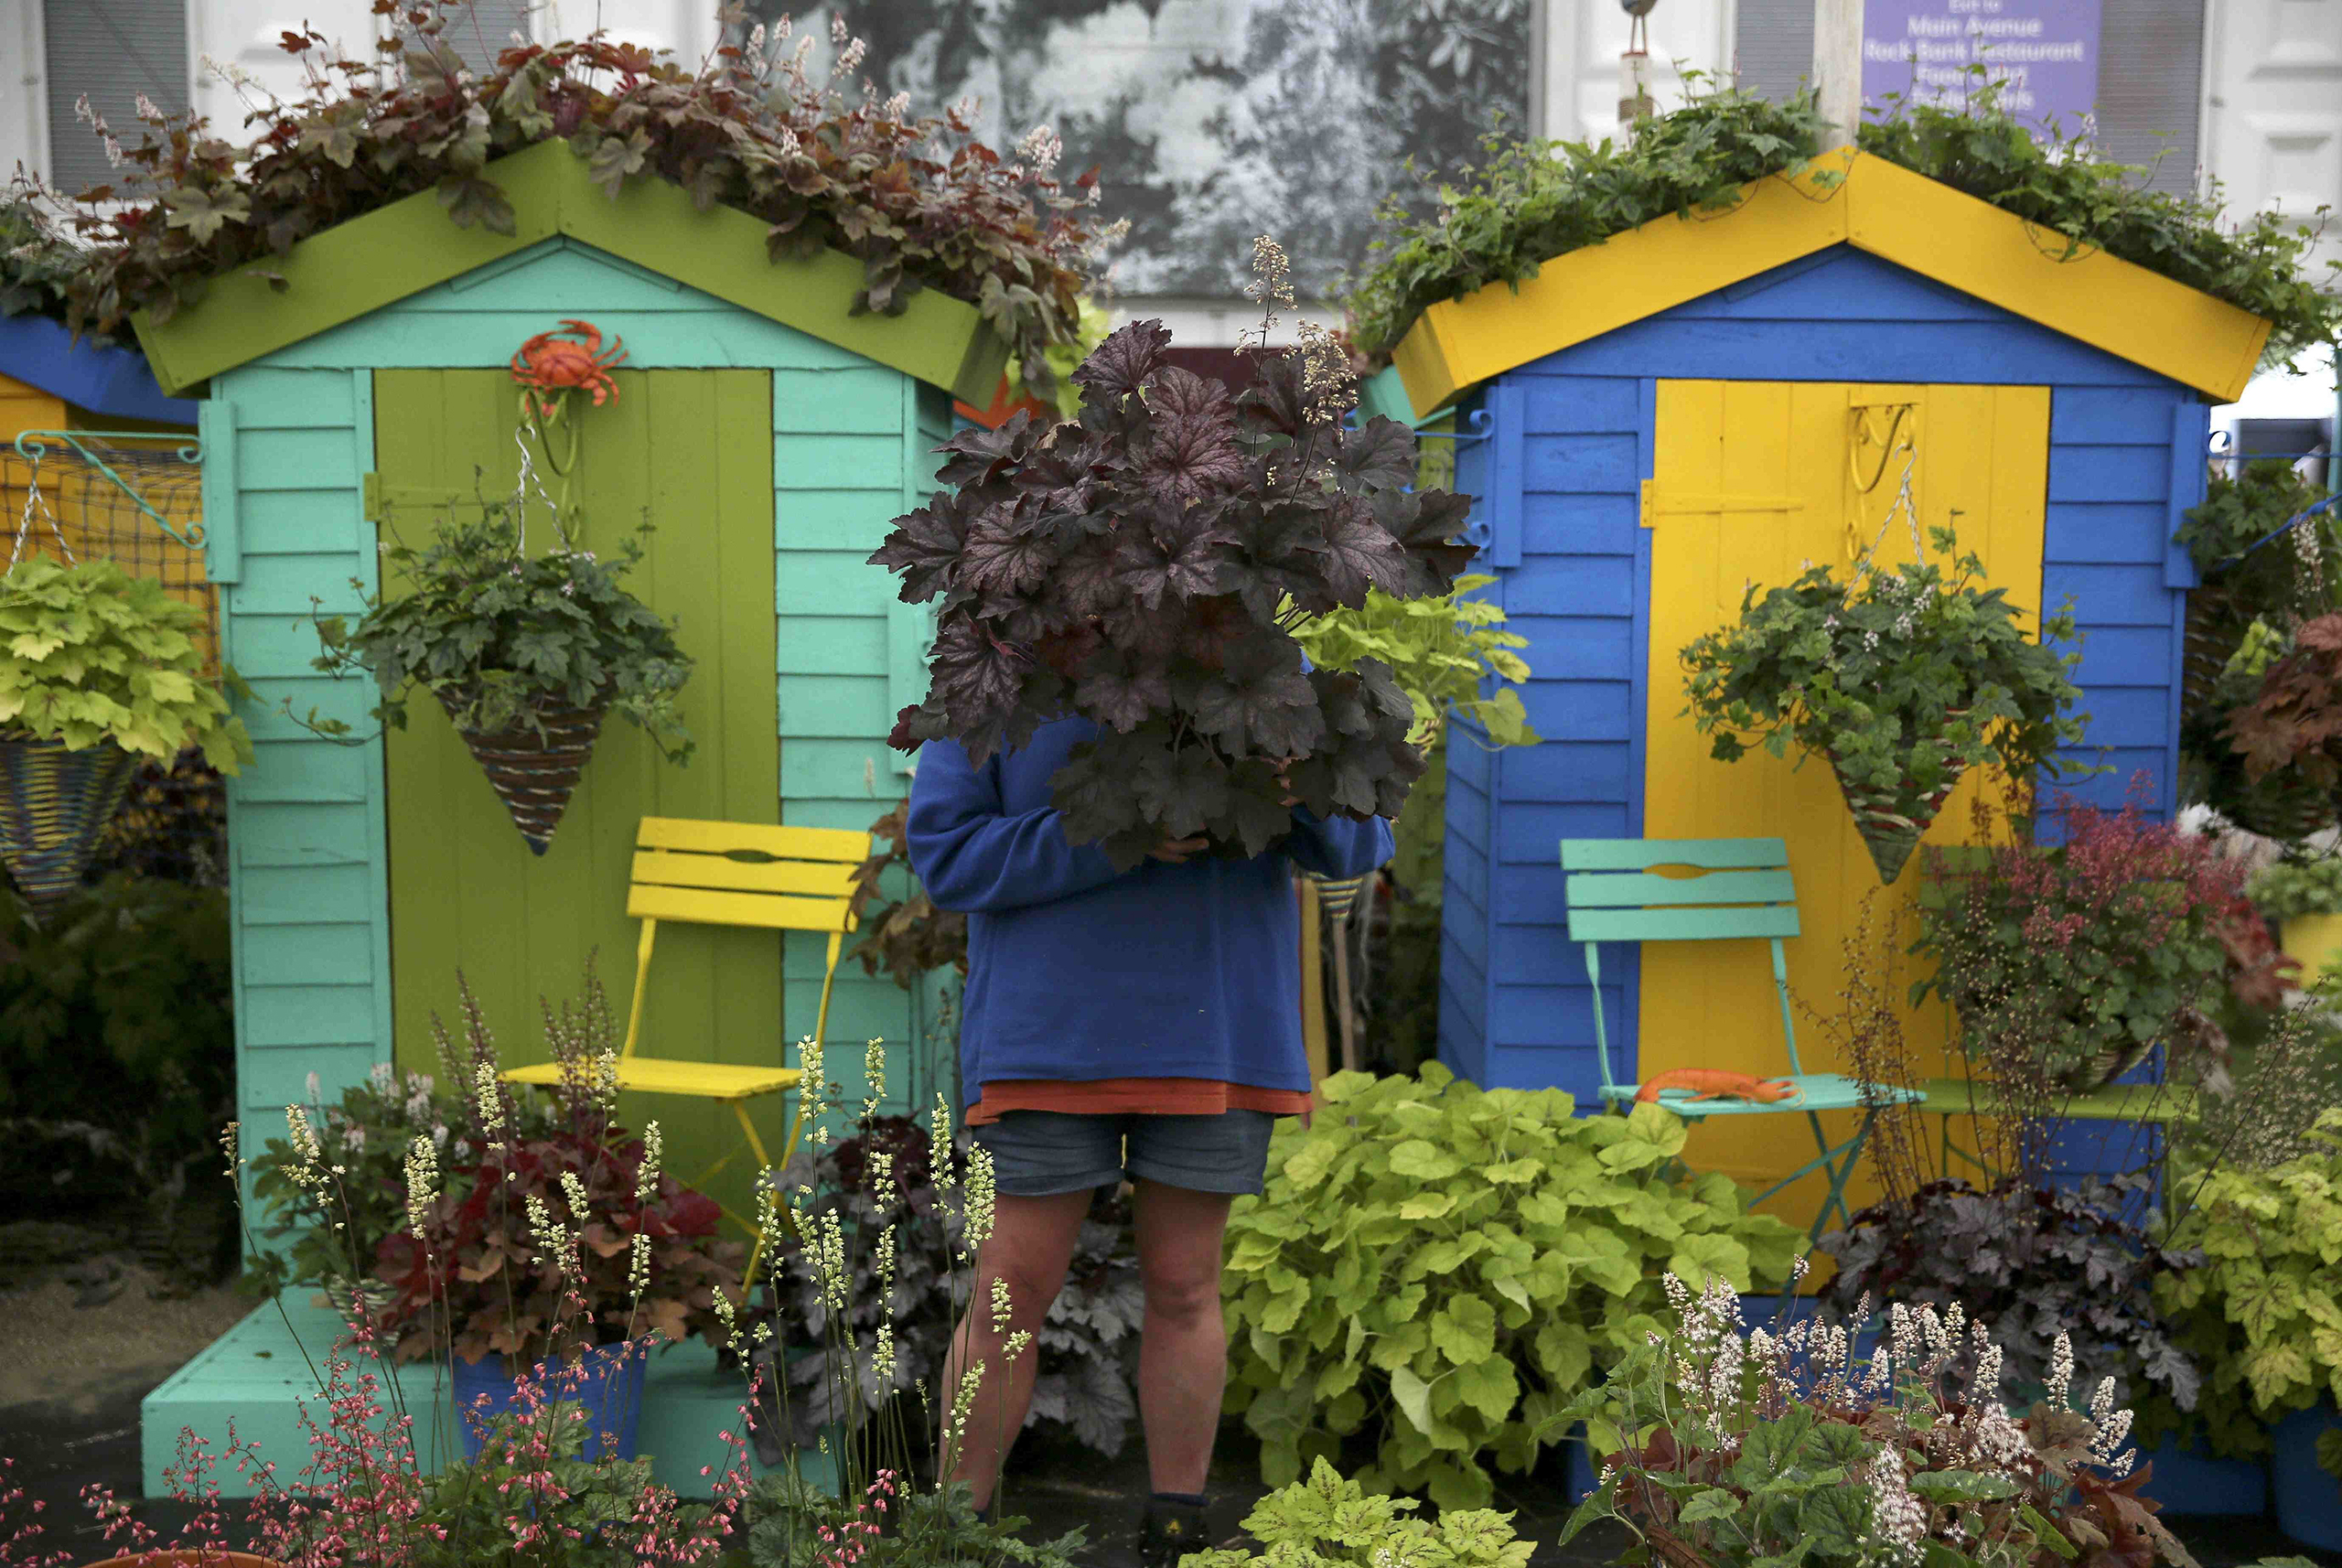 A woman works on a display during preparations for the RHS Chelsea Flower Show in London on May 21, 2016.